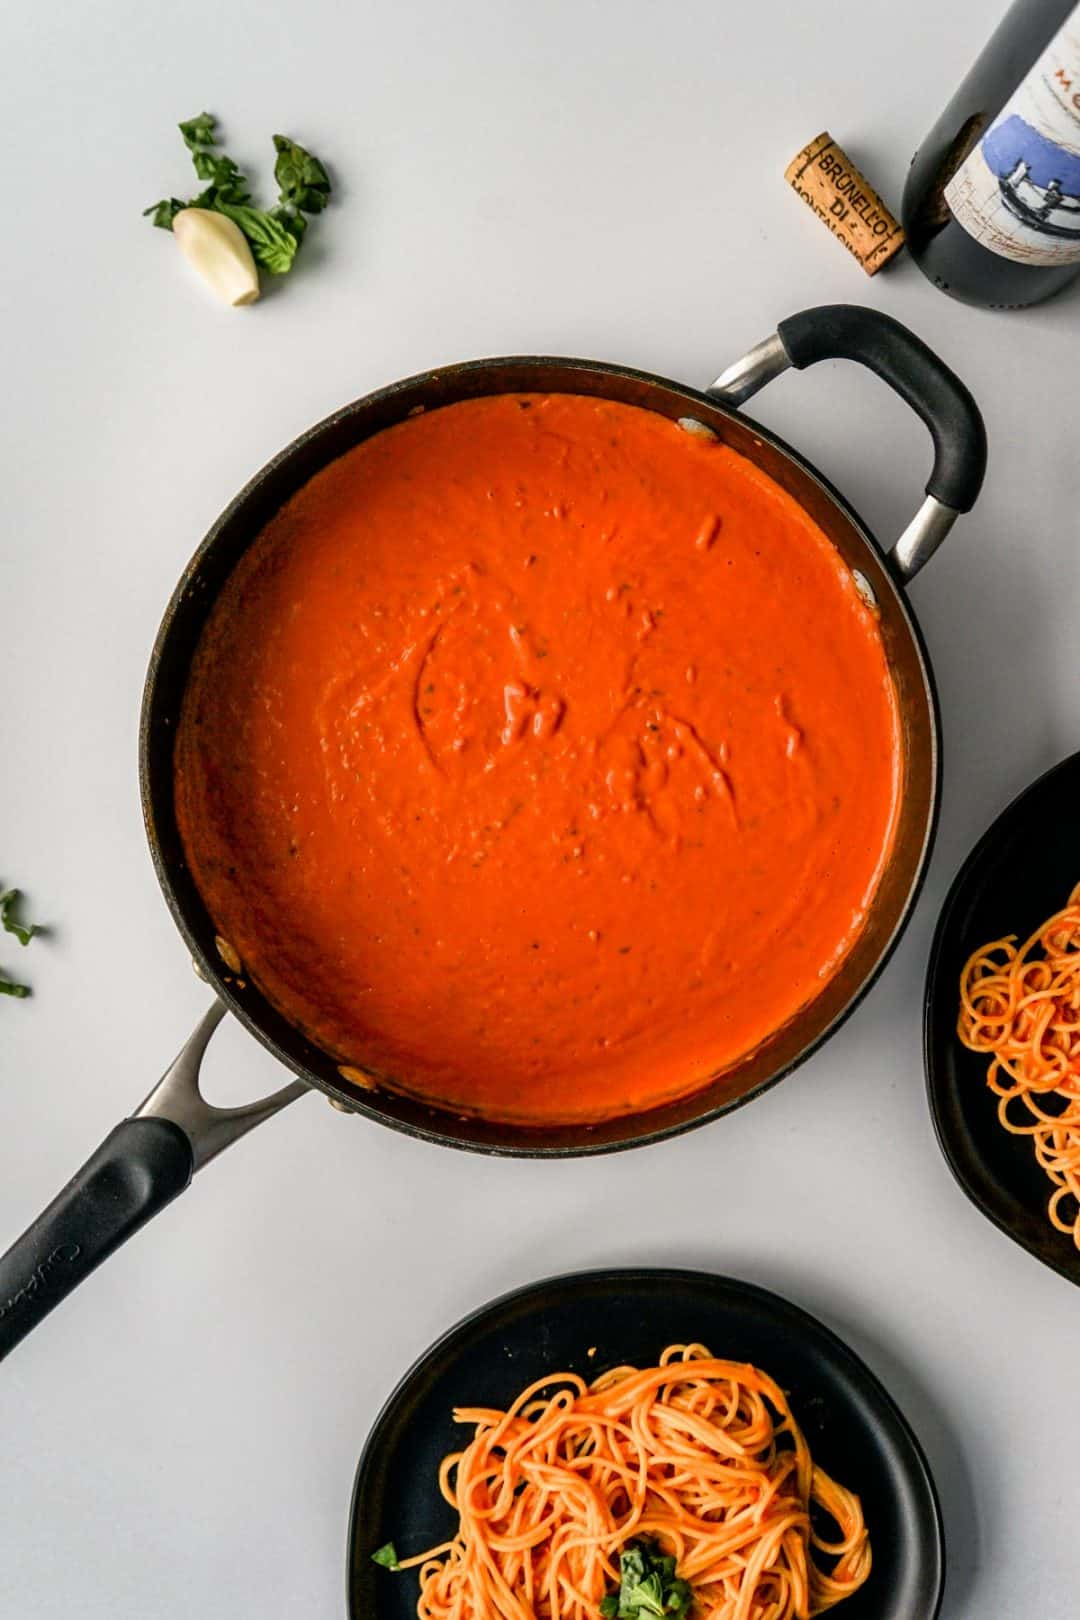 A large saucepan full of creamy tomato sauce with two plates of pasta, a garlic clove and basil leaves, and open bottle of wine around the pan.